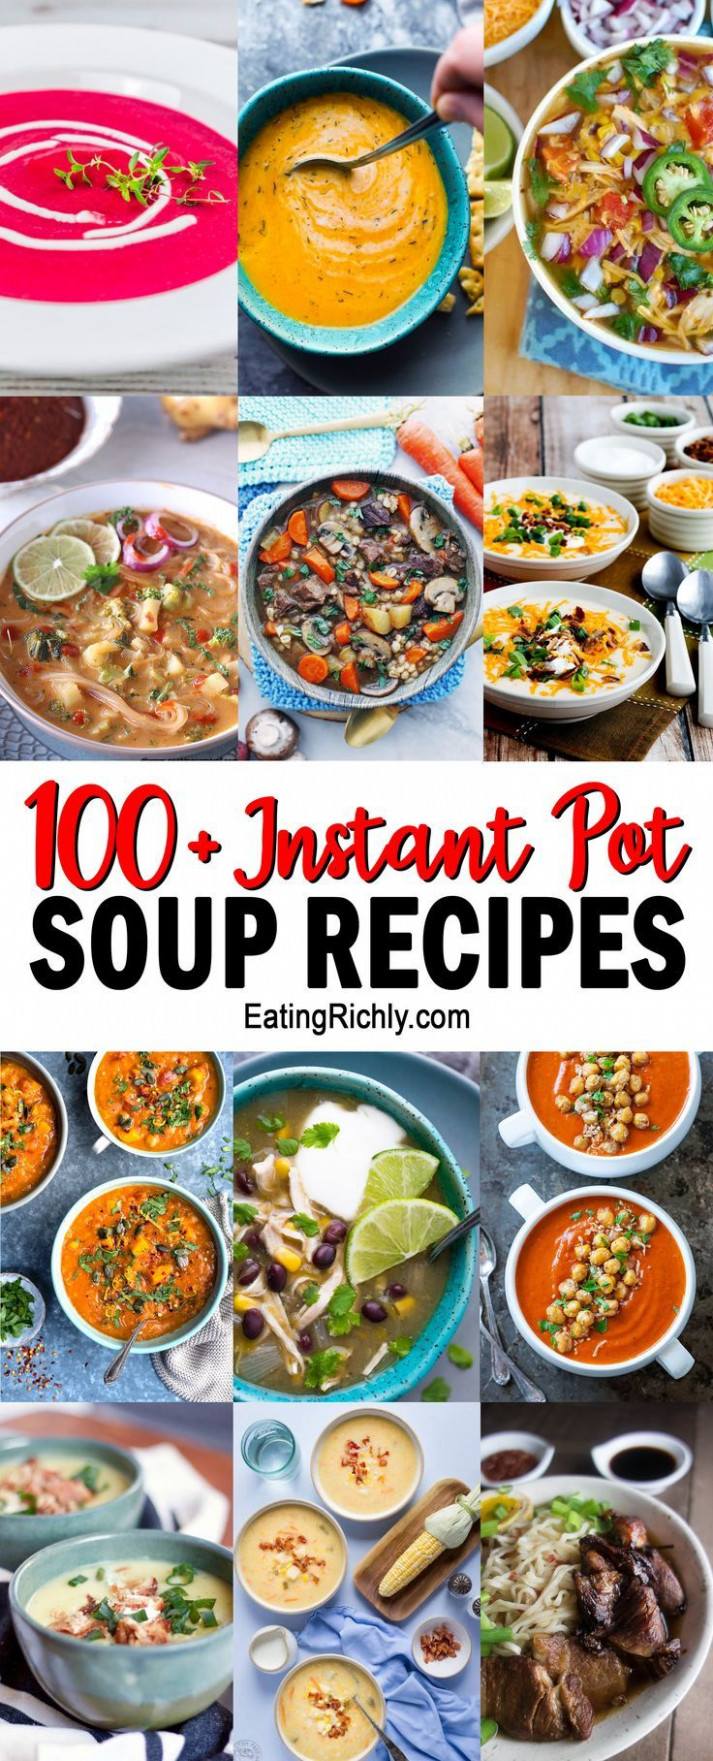 Instant Pot Soup Recipes Your Family Can't Resist (15+ ..